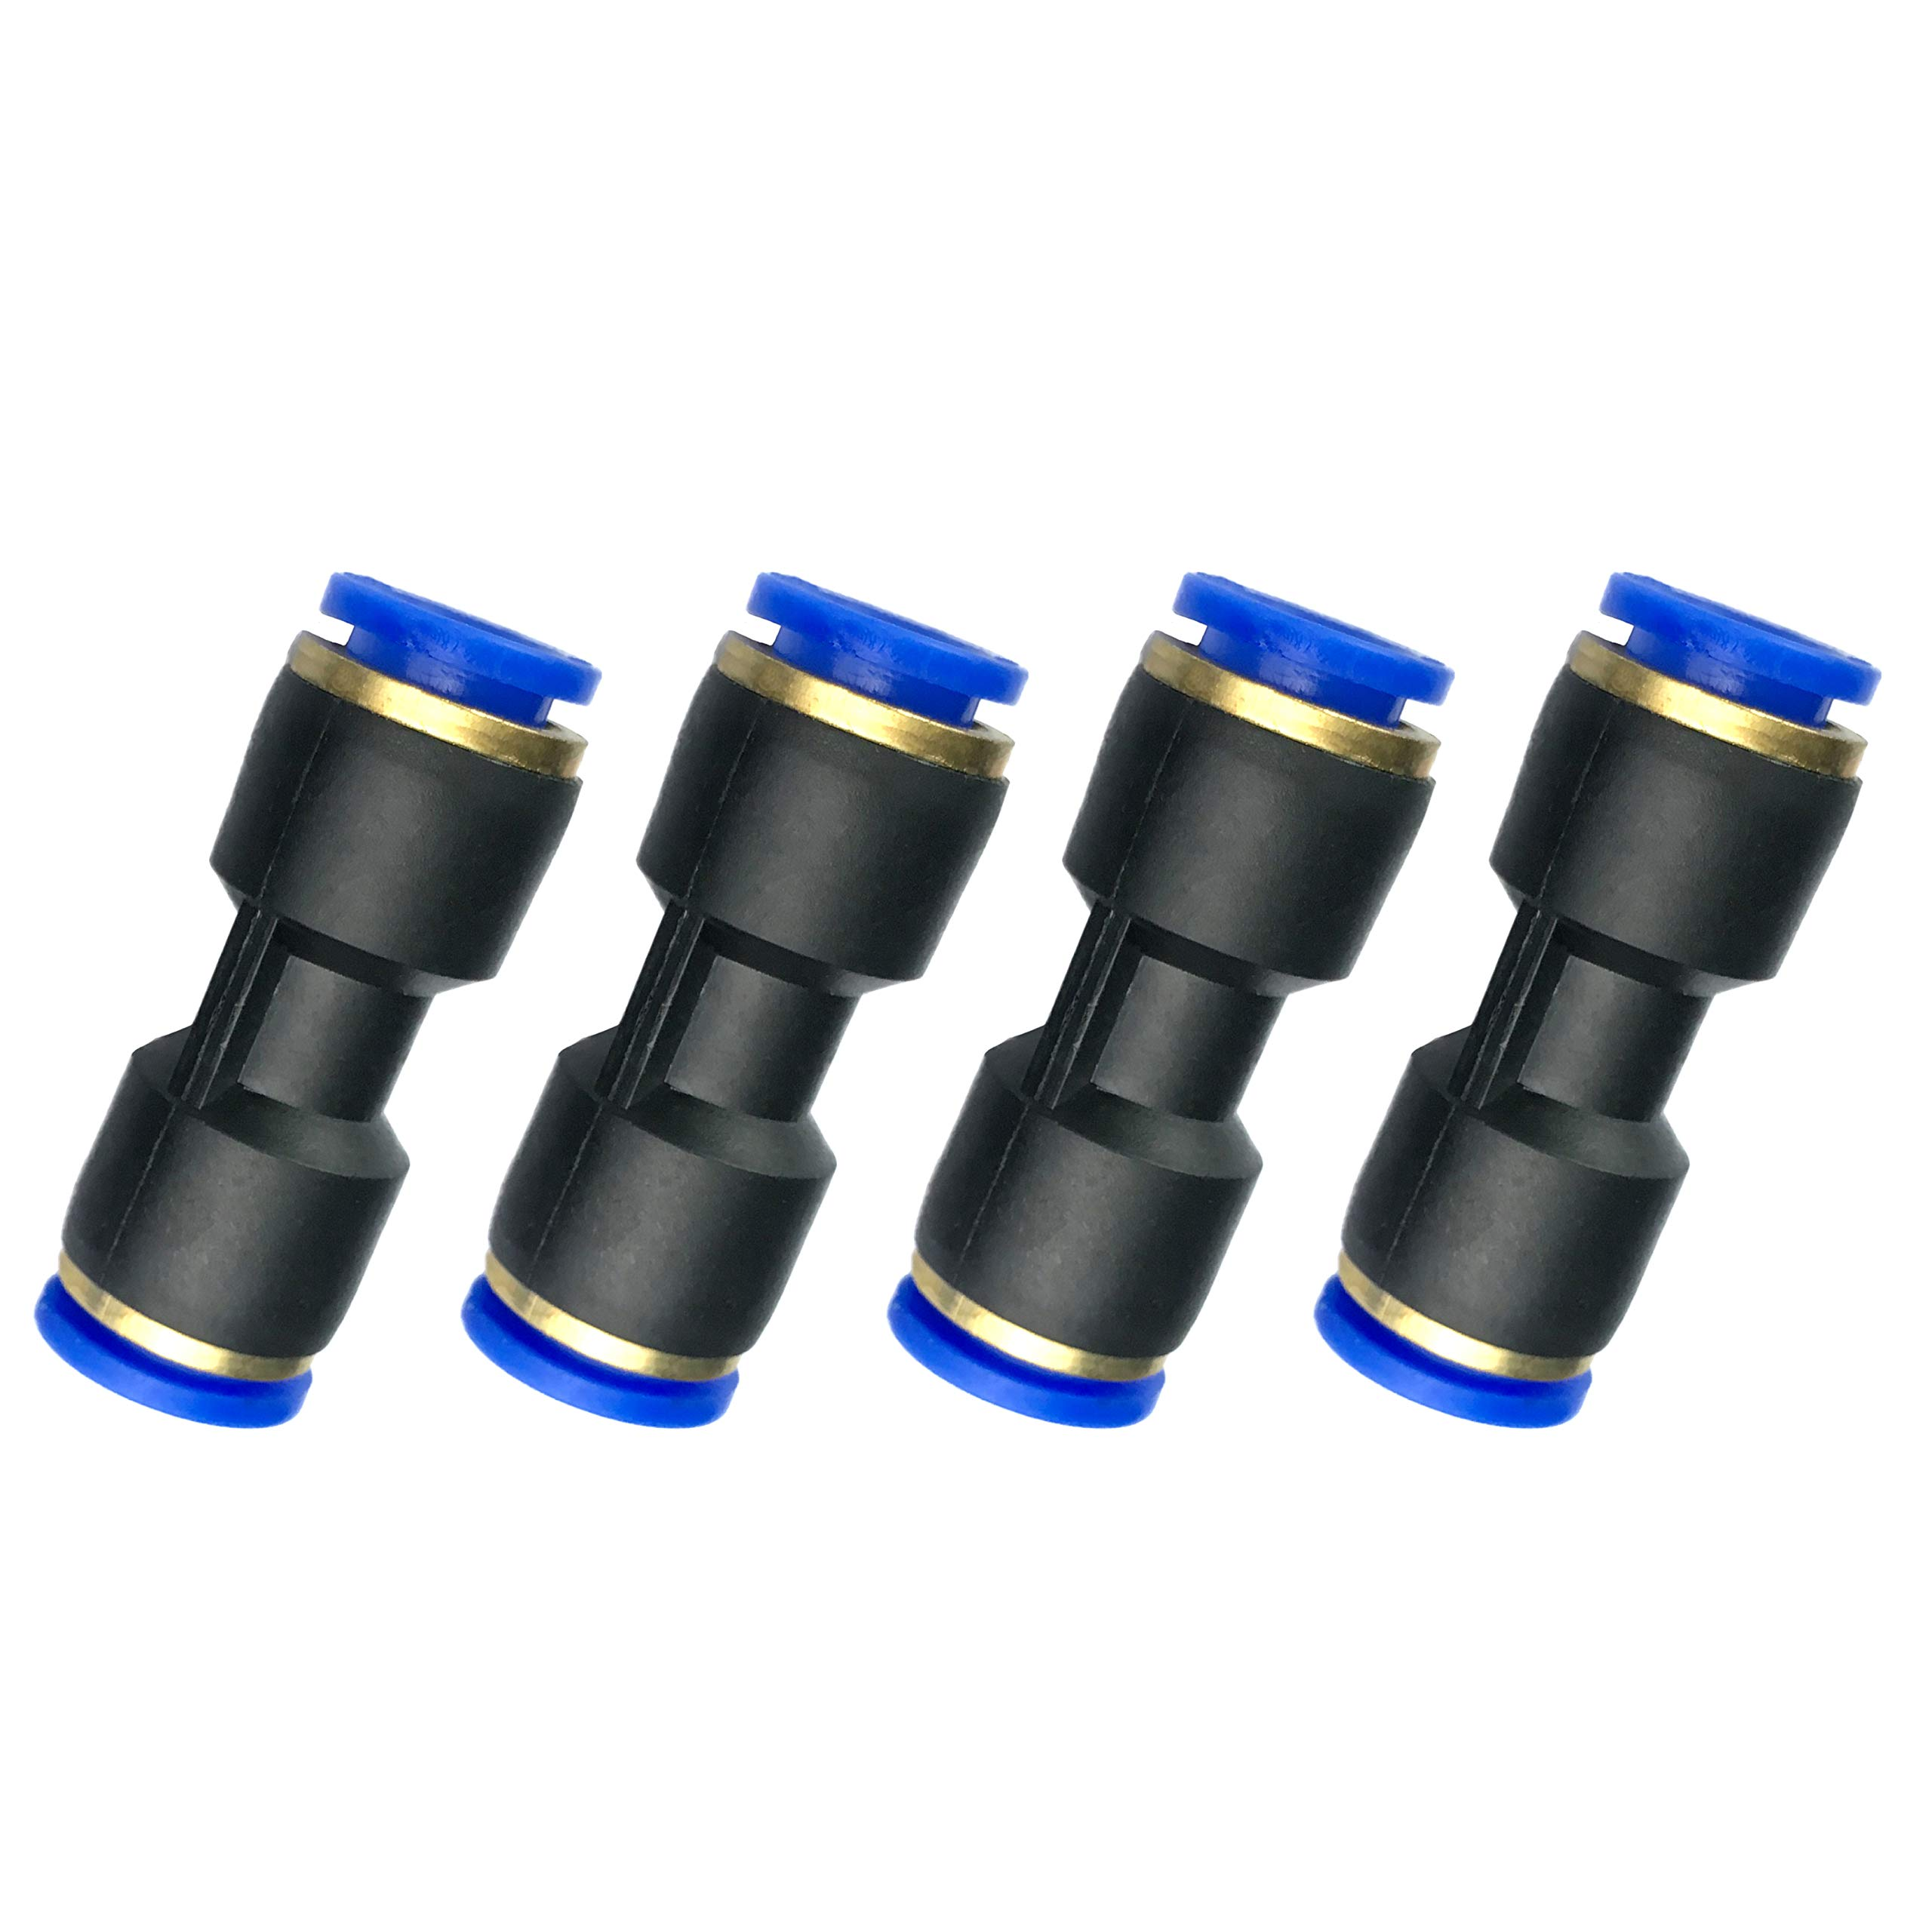 Fuel Line Connector for 12mm OD Pneumatic Nylon Tubing Hose Union Quick Connect, Fit 0.47'' OD Nylon Tube Pack of 4